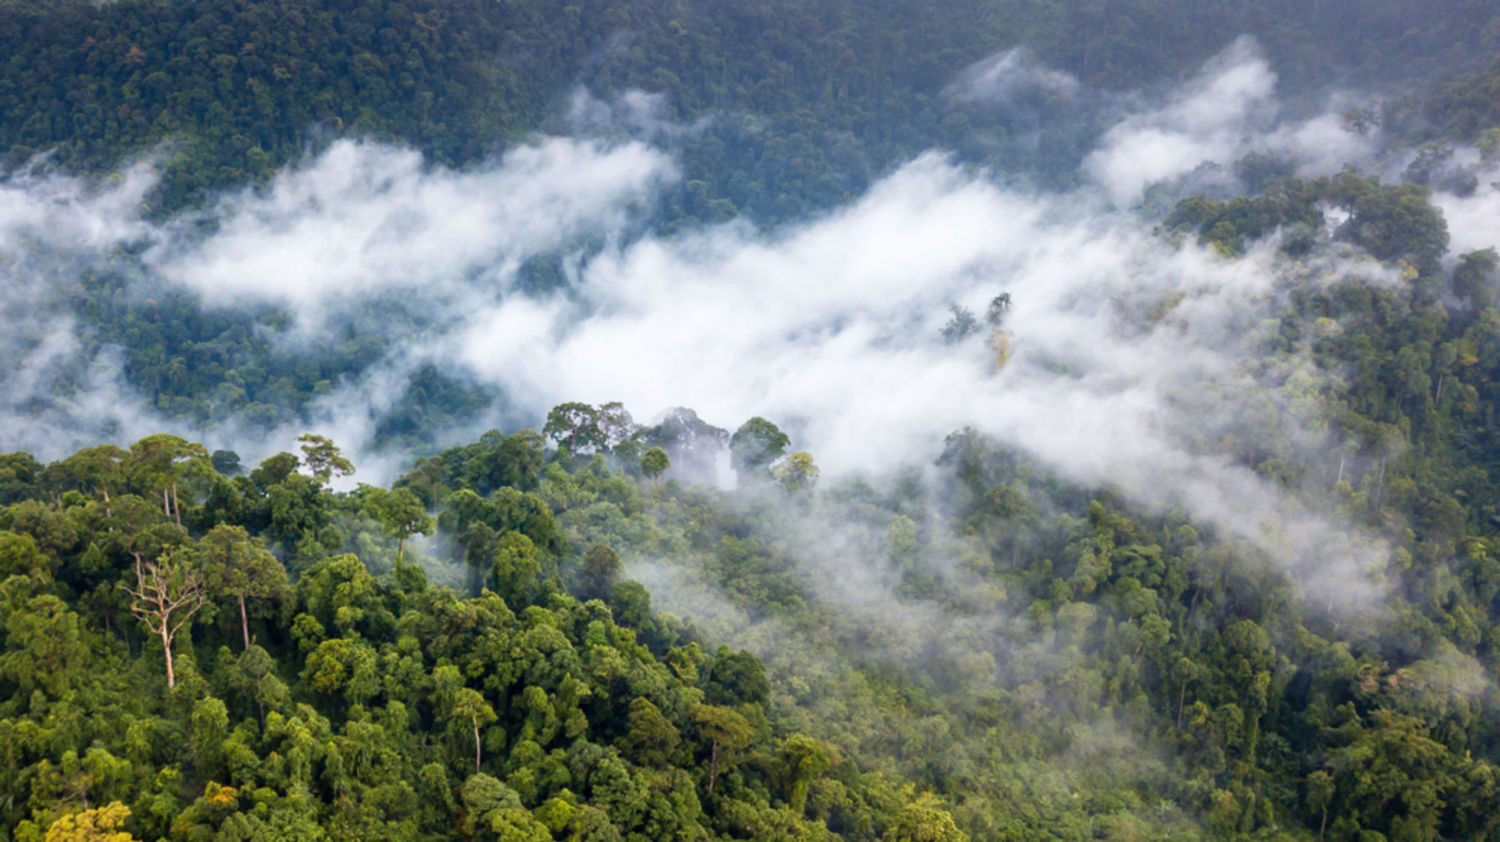 hight resolution of moisture produced by the world s forests generates rainfall thousands of miles